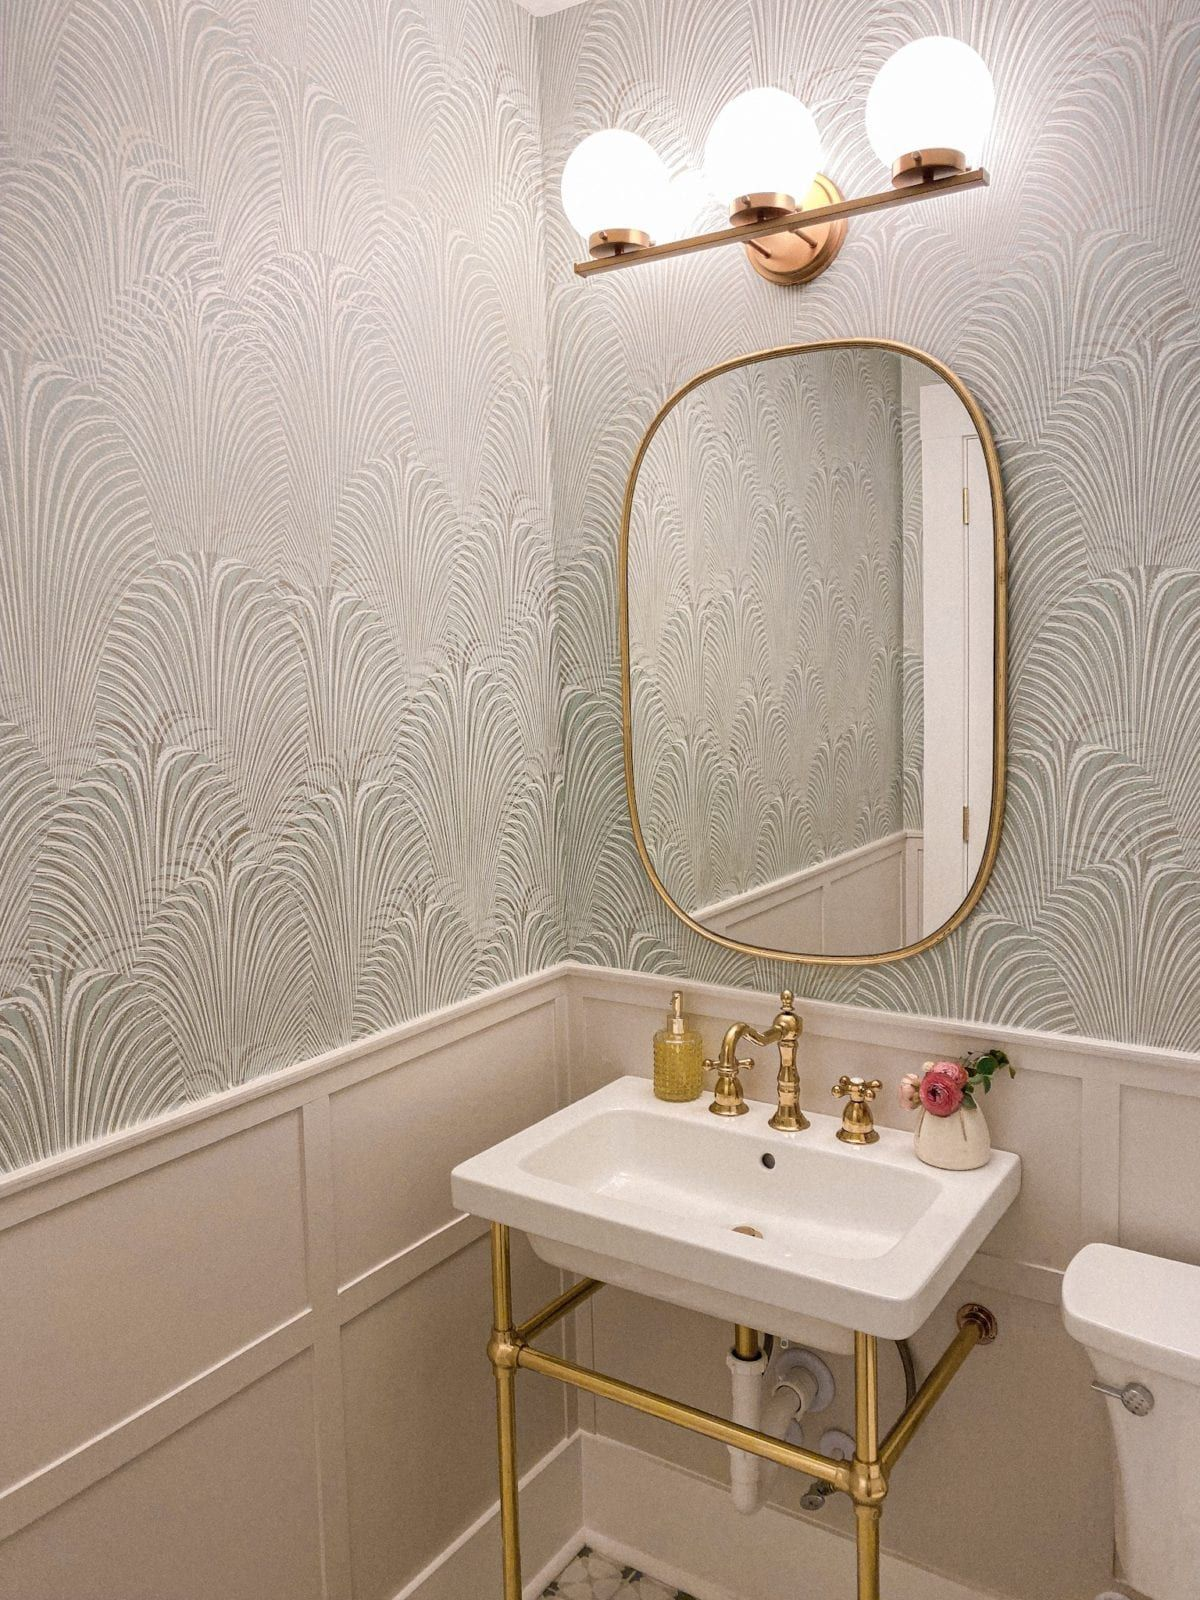 Our Patterned Tile And Wallpaper Half Bath Reveal Beautiful Bathroom Decor Bath Inspiration Cool Light Fixtures